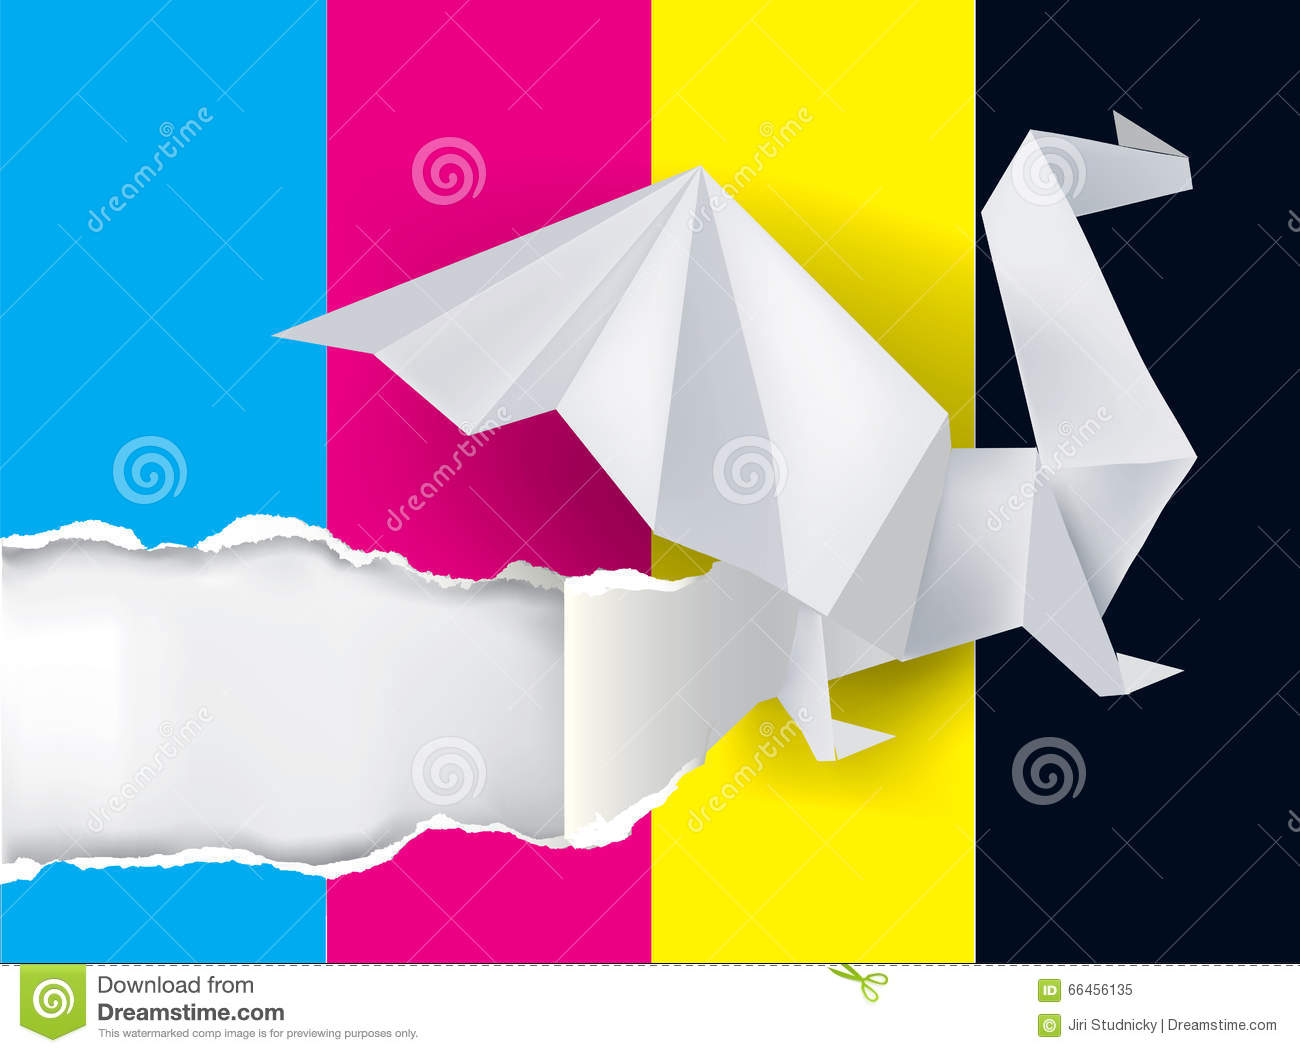 44 Best Origami Dragon - How to images | Origami dragon, Origami ... | 1053x1300